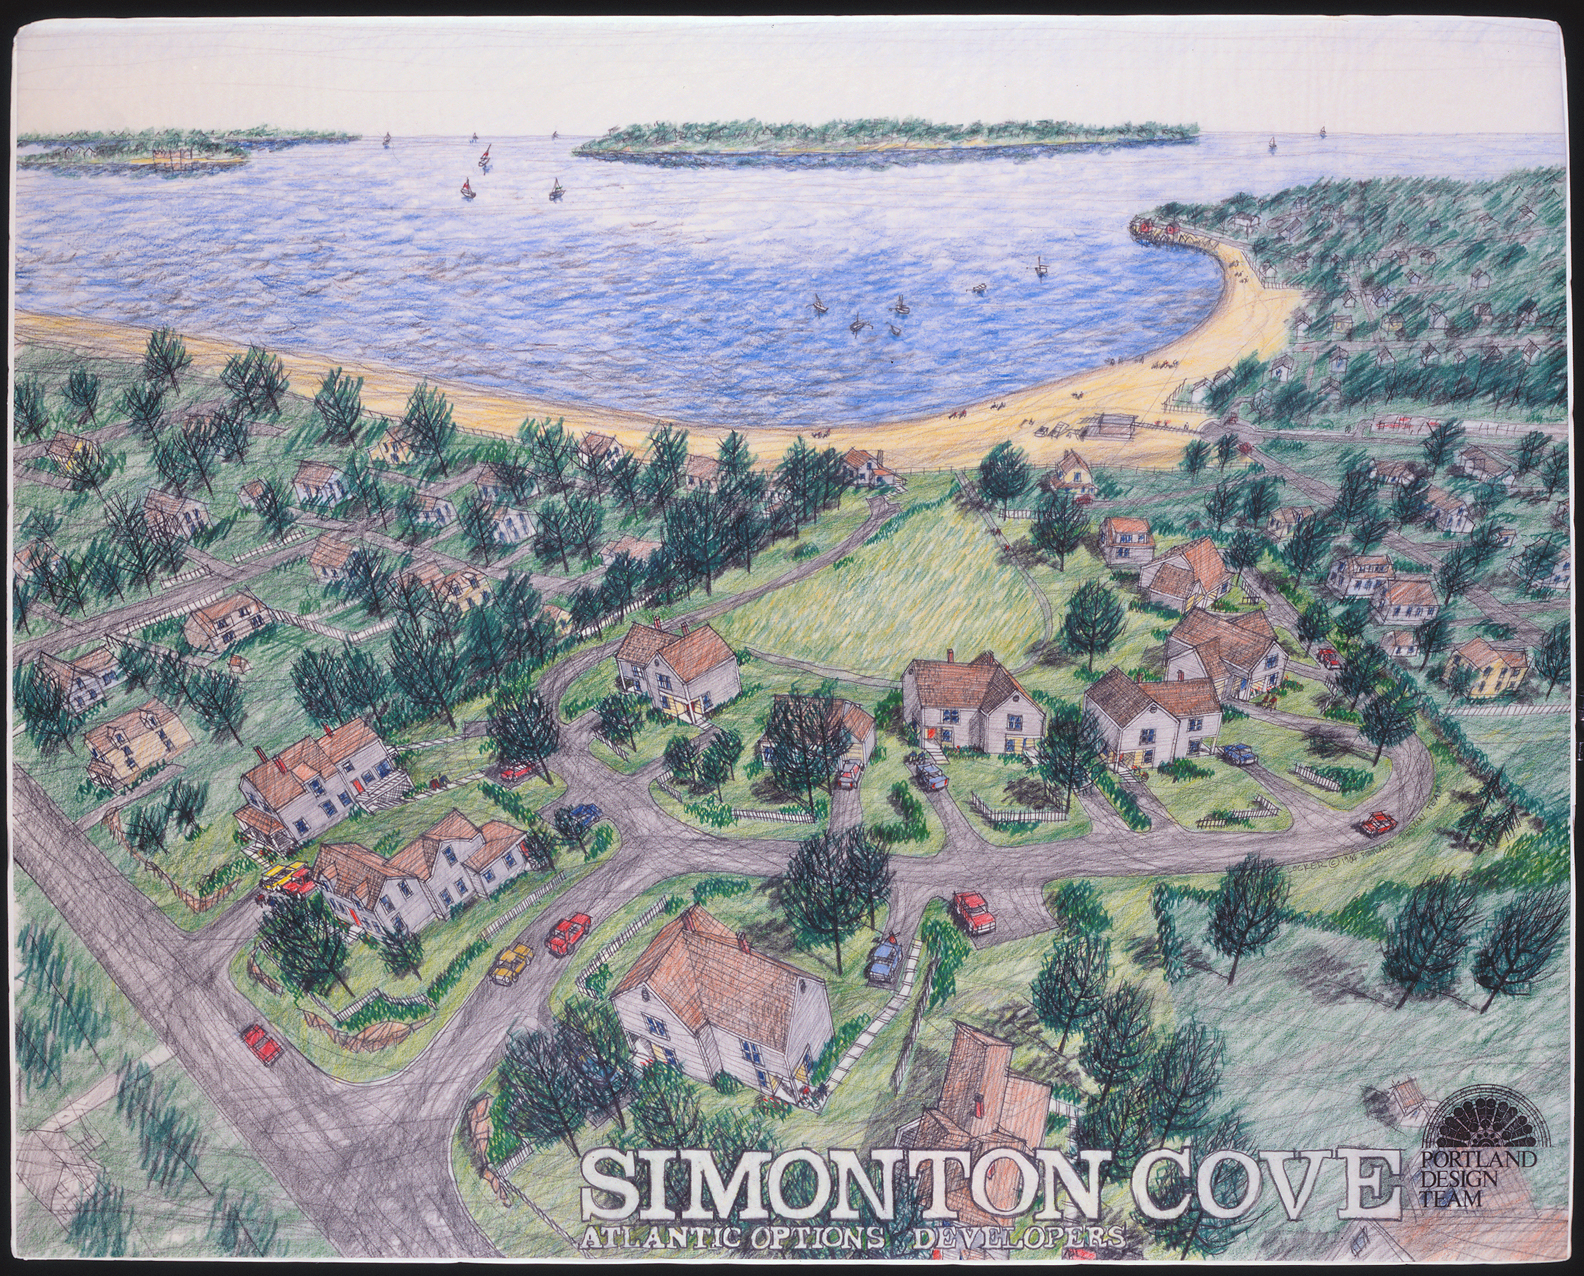 Birdseye view, Simonton Cove, South Portland, Maine